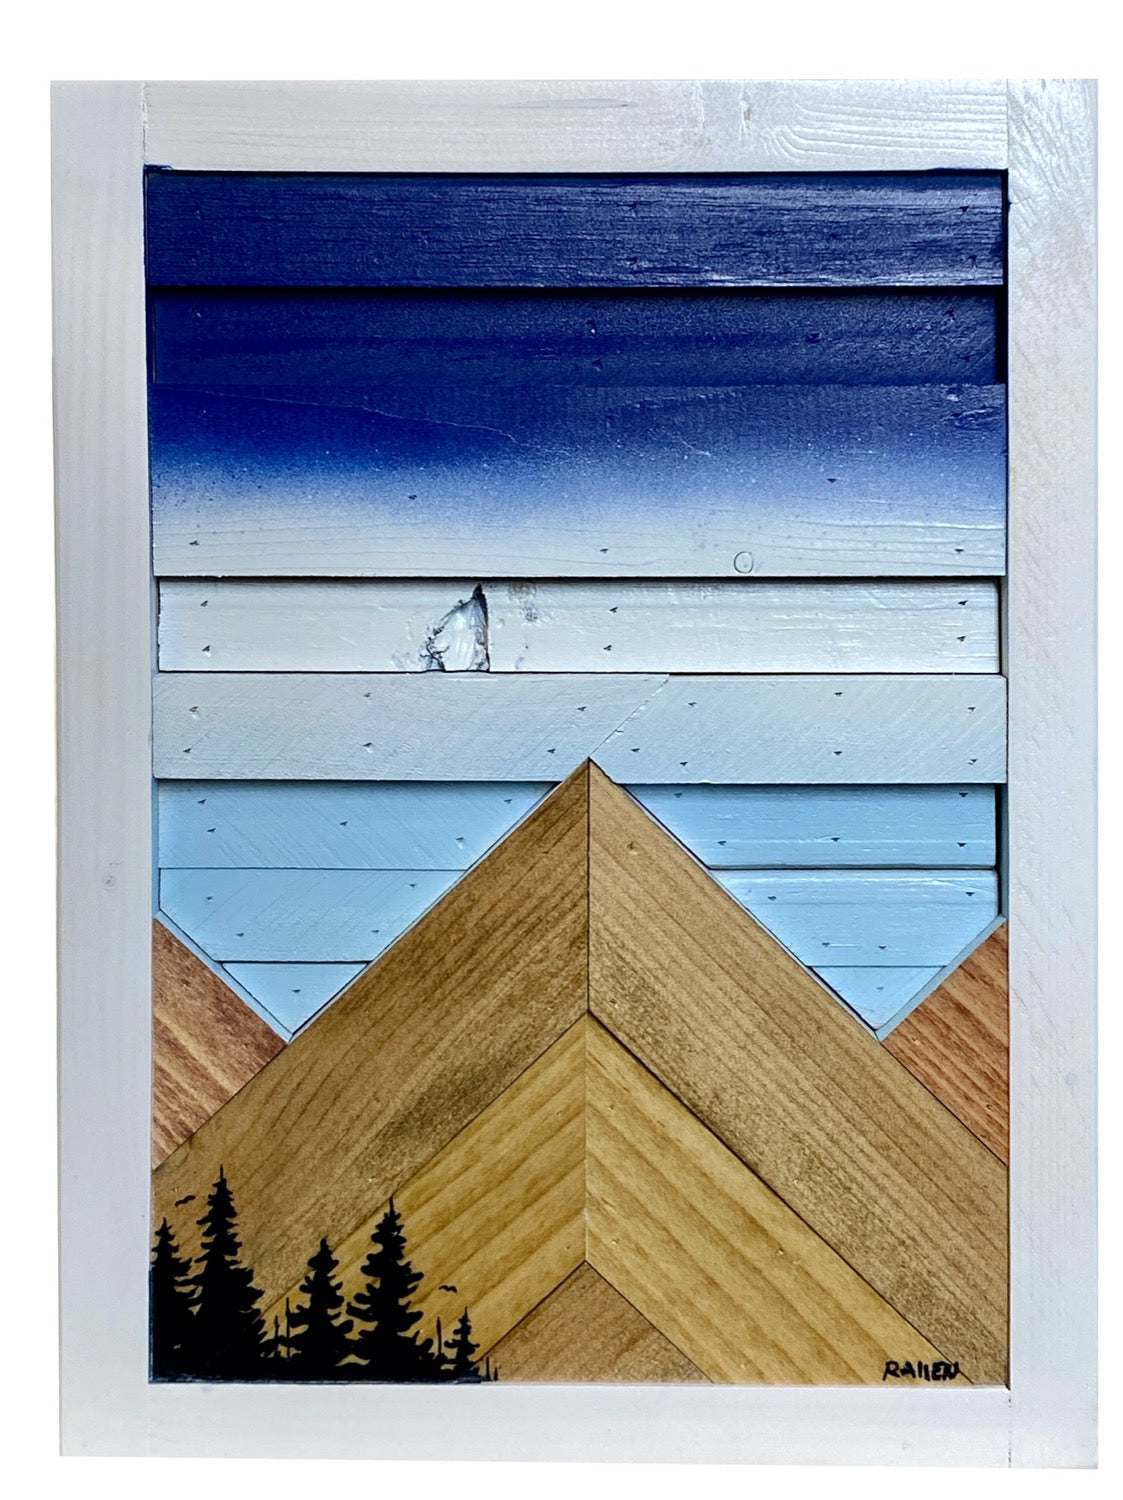 Where Eagles Soar - Raymond Allen - 8.25x11.25""